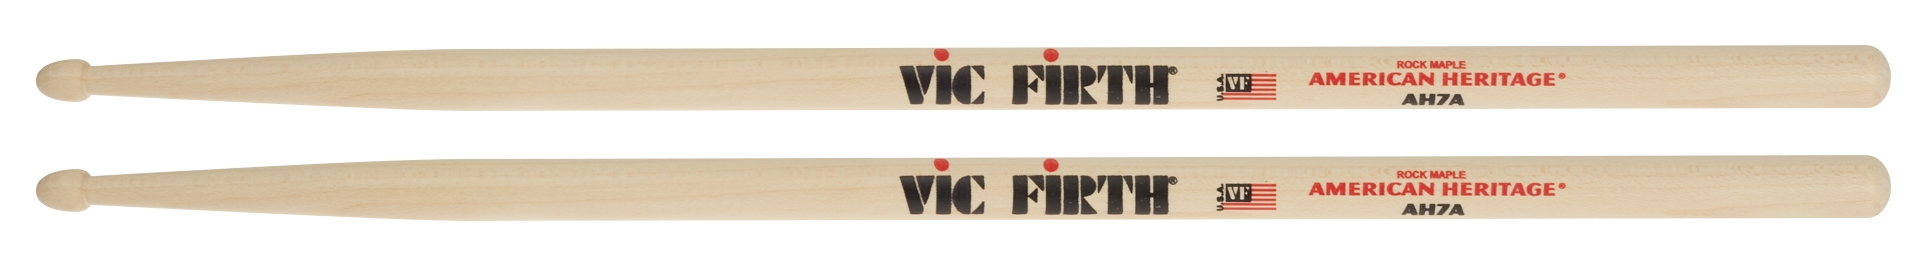 VIC FIRTH AH7A American Heritage®